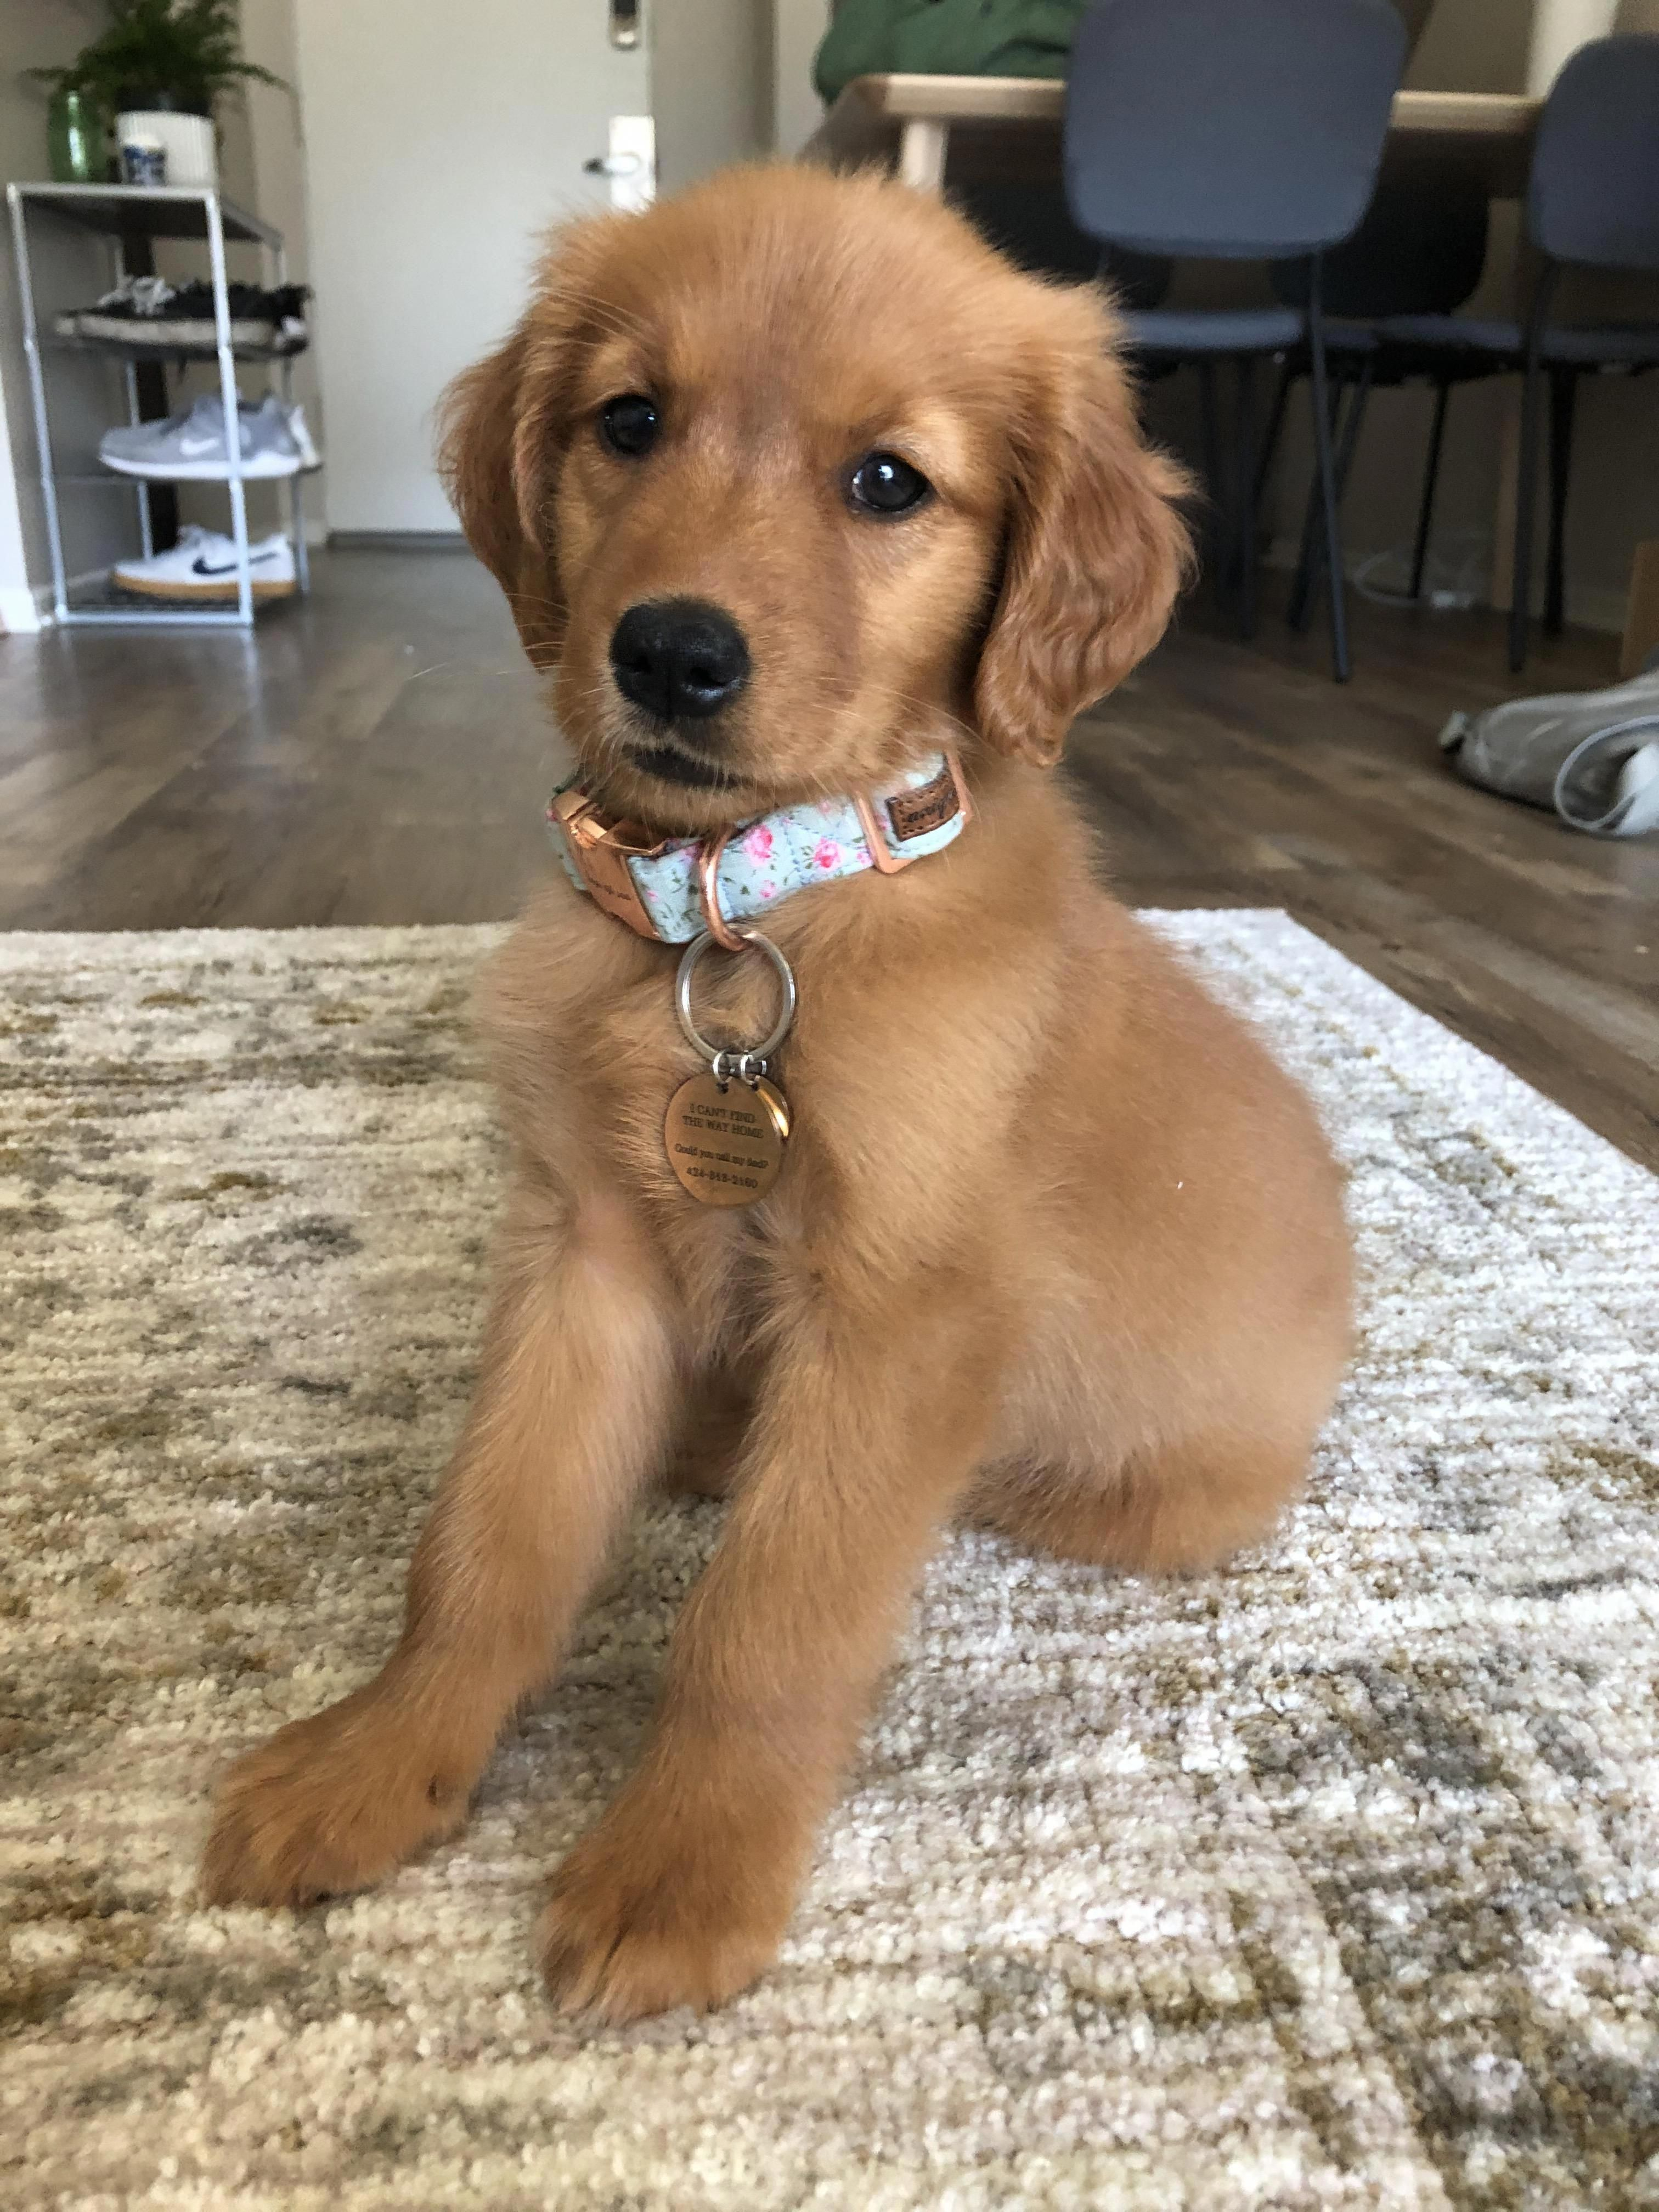 Meet Harper 9 Weeks Old Today And My First Golden Retriever She Loves Napping And Meeting New People In 2020 Dogs Golden Retriever Golden Retriever Cute Dogs Breeds